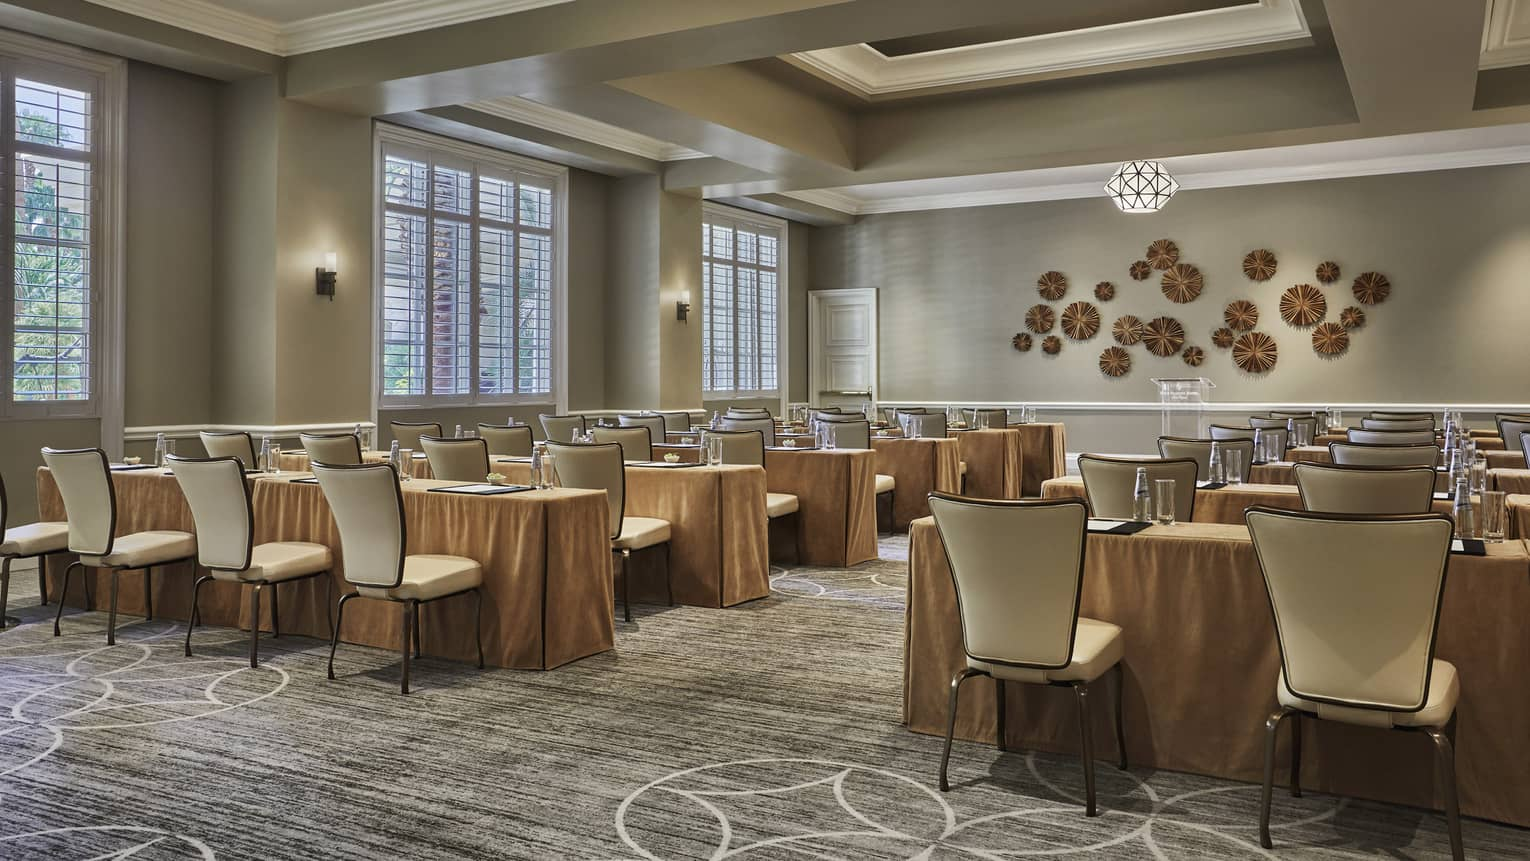 Palm Room conference, rows of meeting tables and chairs facing decorative wall